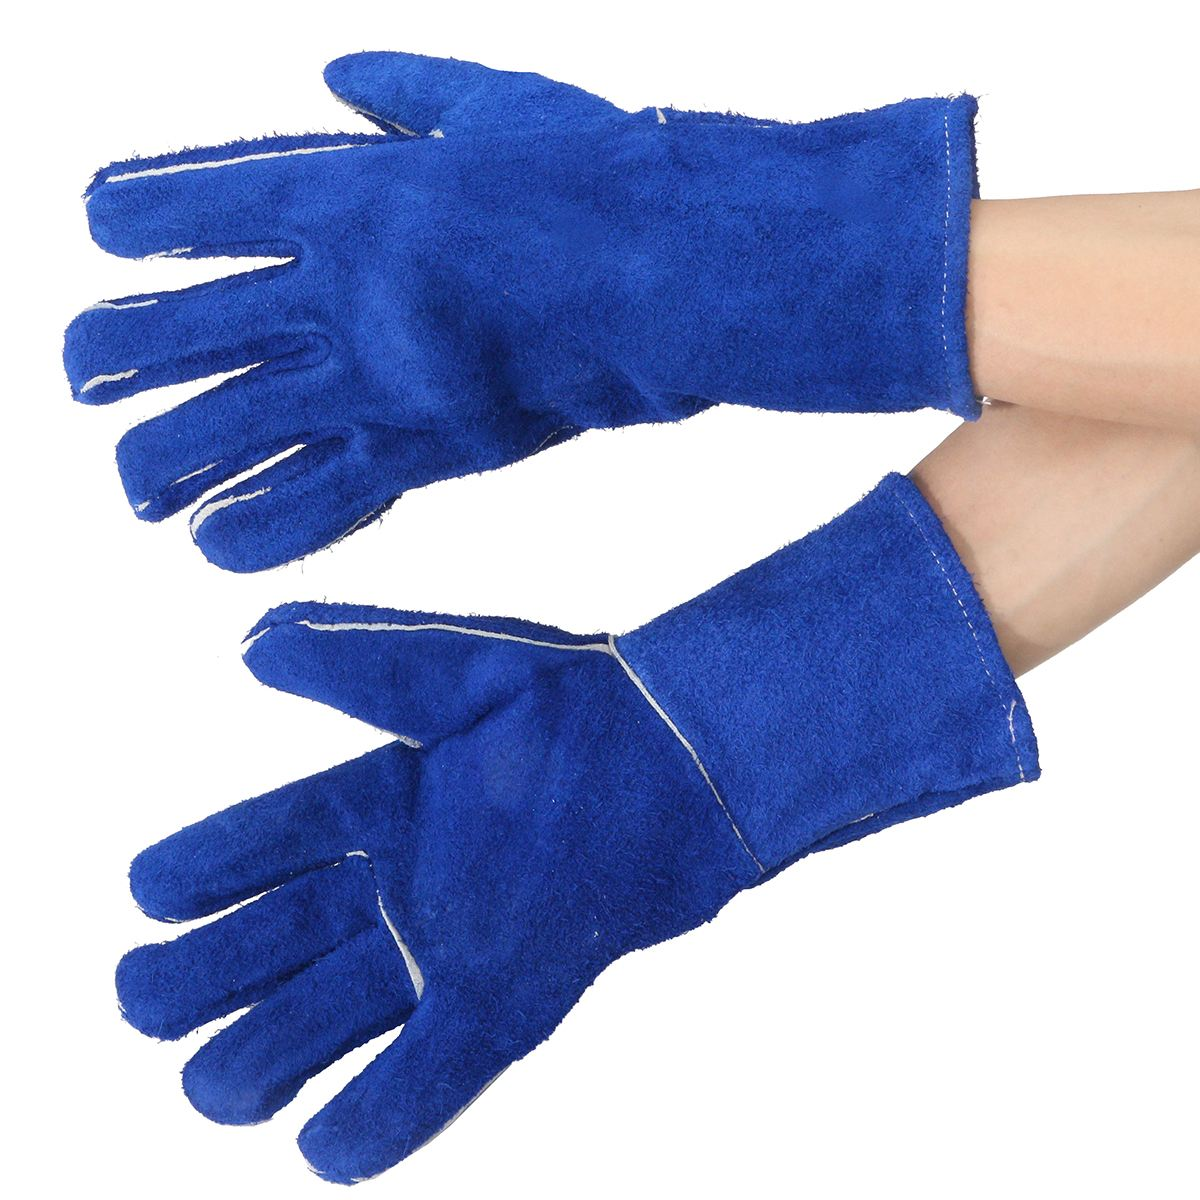 Safurance 14 Welding Gloves Gauntlets Welder Hands Fire High Temperature Protection Blue Workplace Safety Glove manitobah рукавицы fur gauntlets